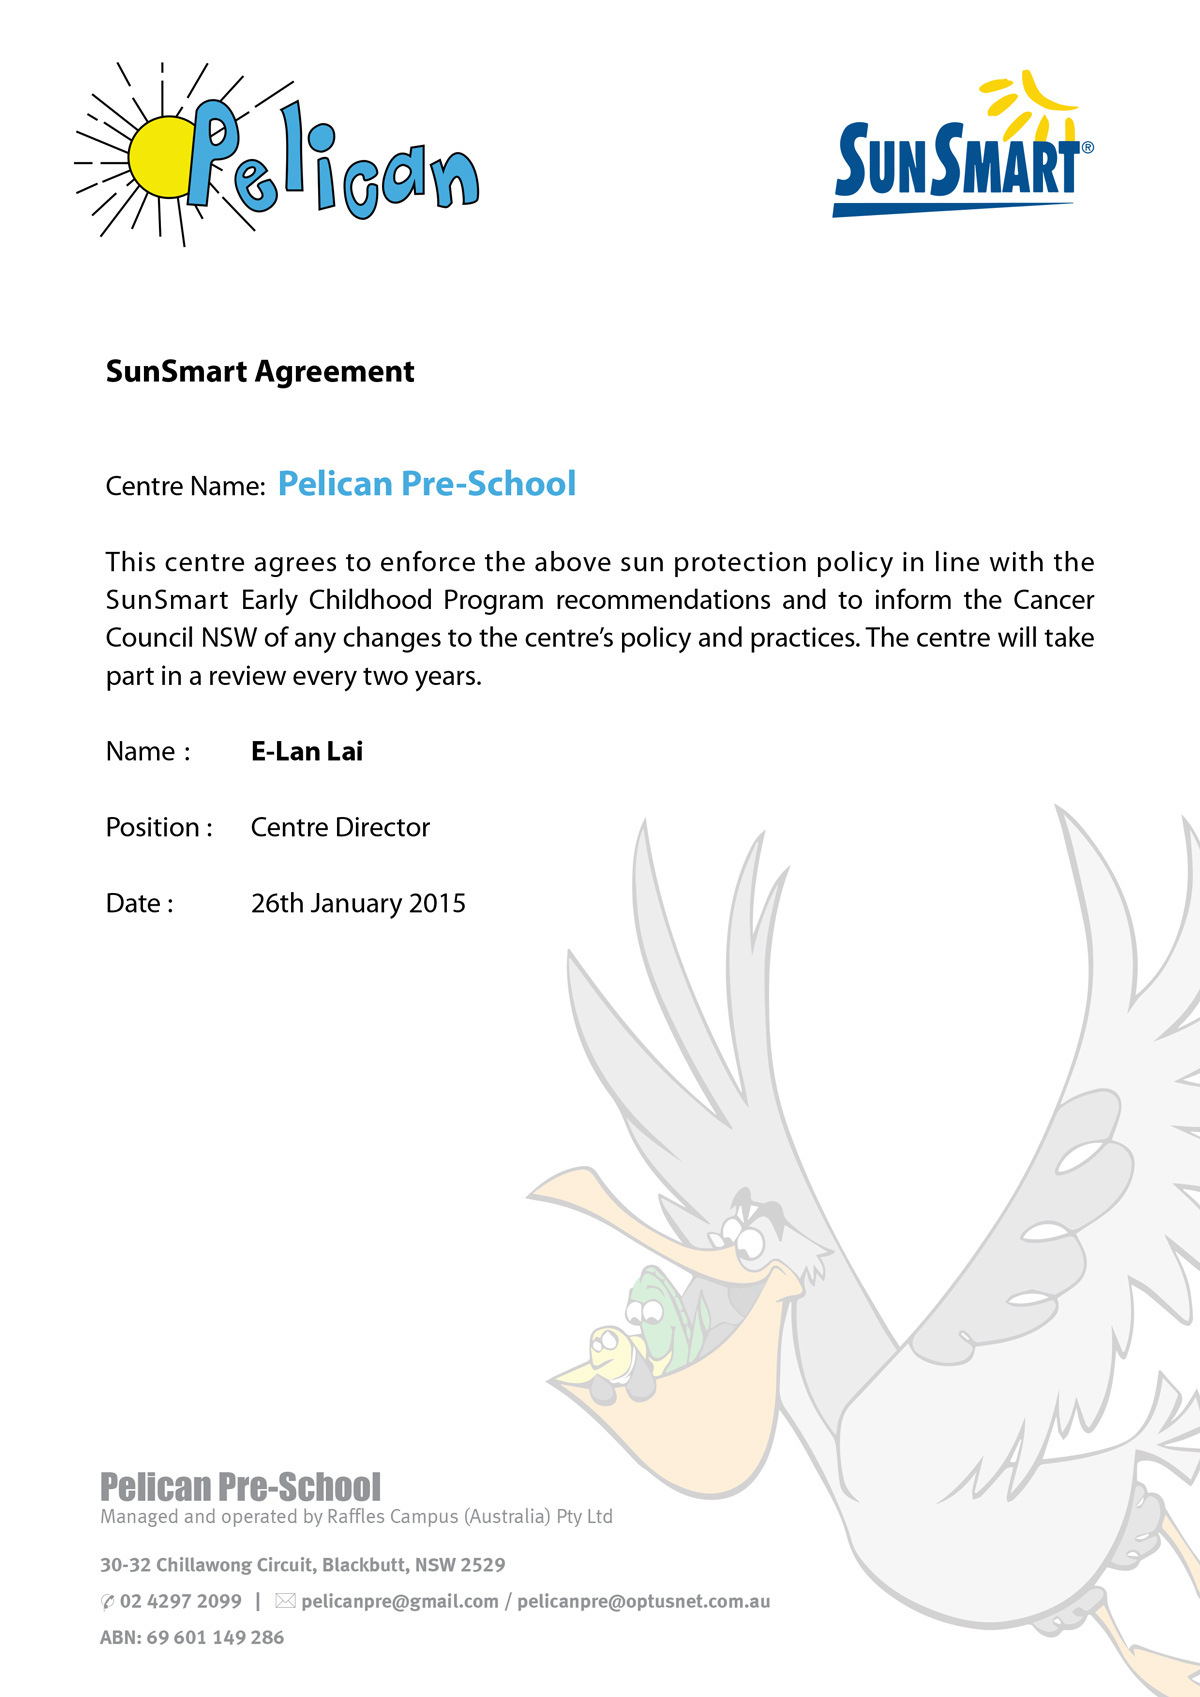 sunsmart-agreement